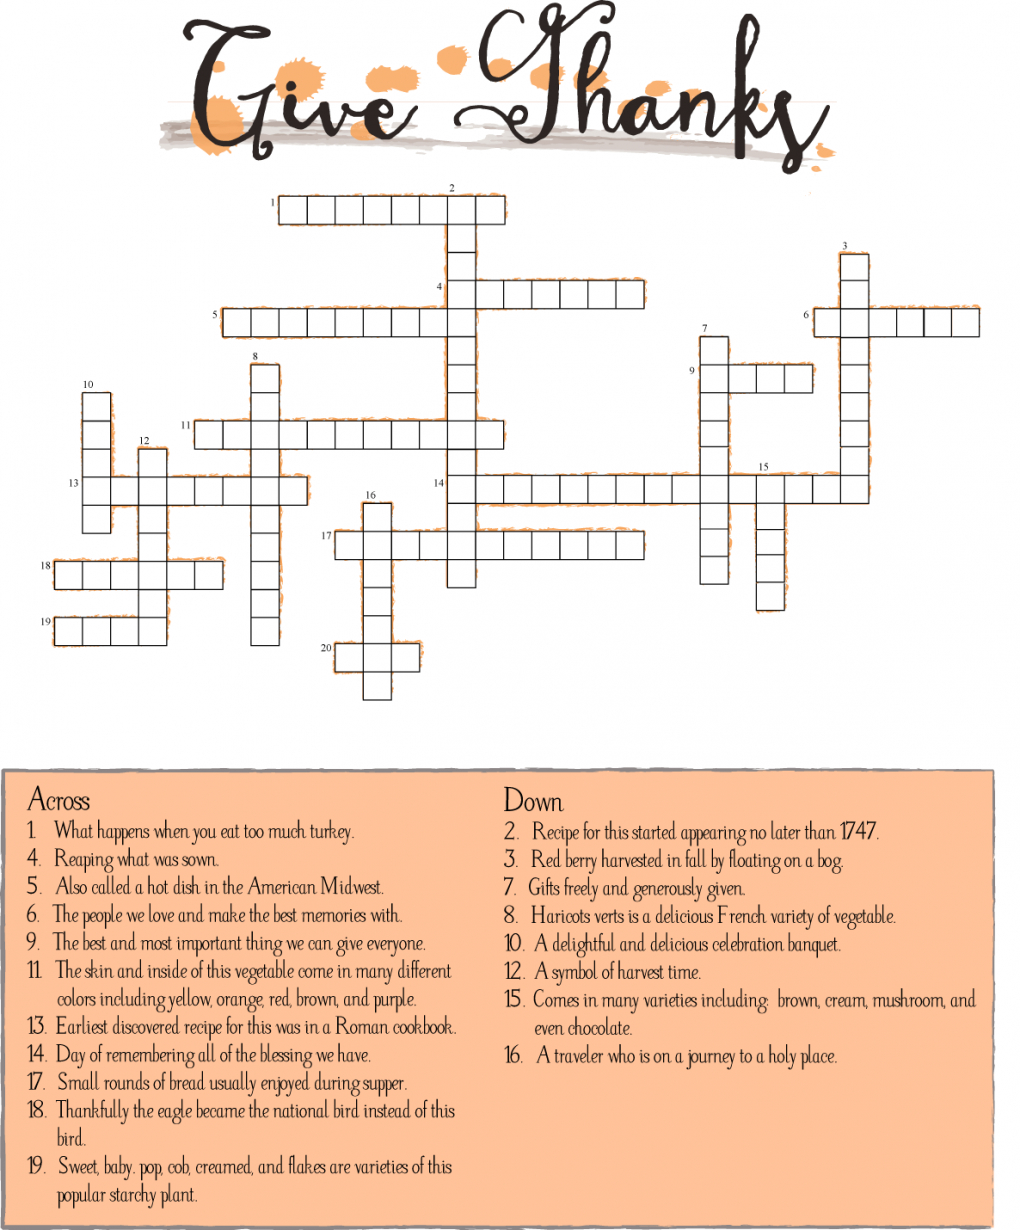 10 Superfun Thanksgiving Crossword Puzzles | Kittybabylove - Printable Thanksgiving Crossword Puzzles For Adults